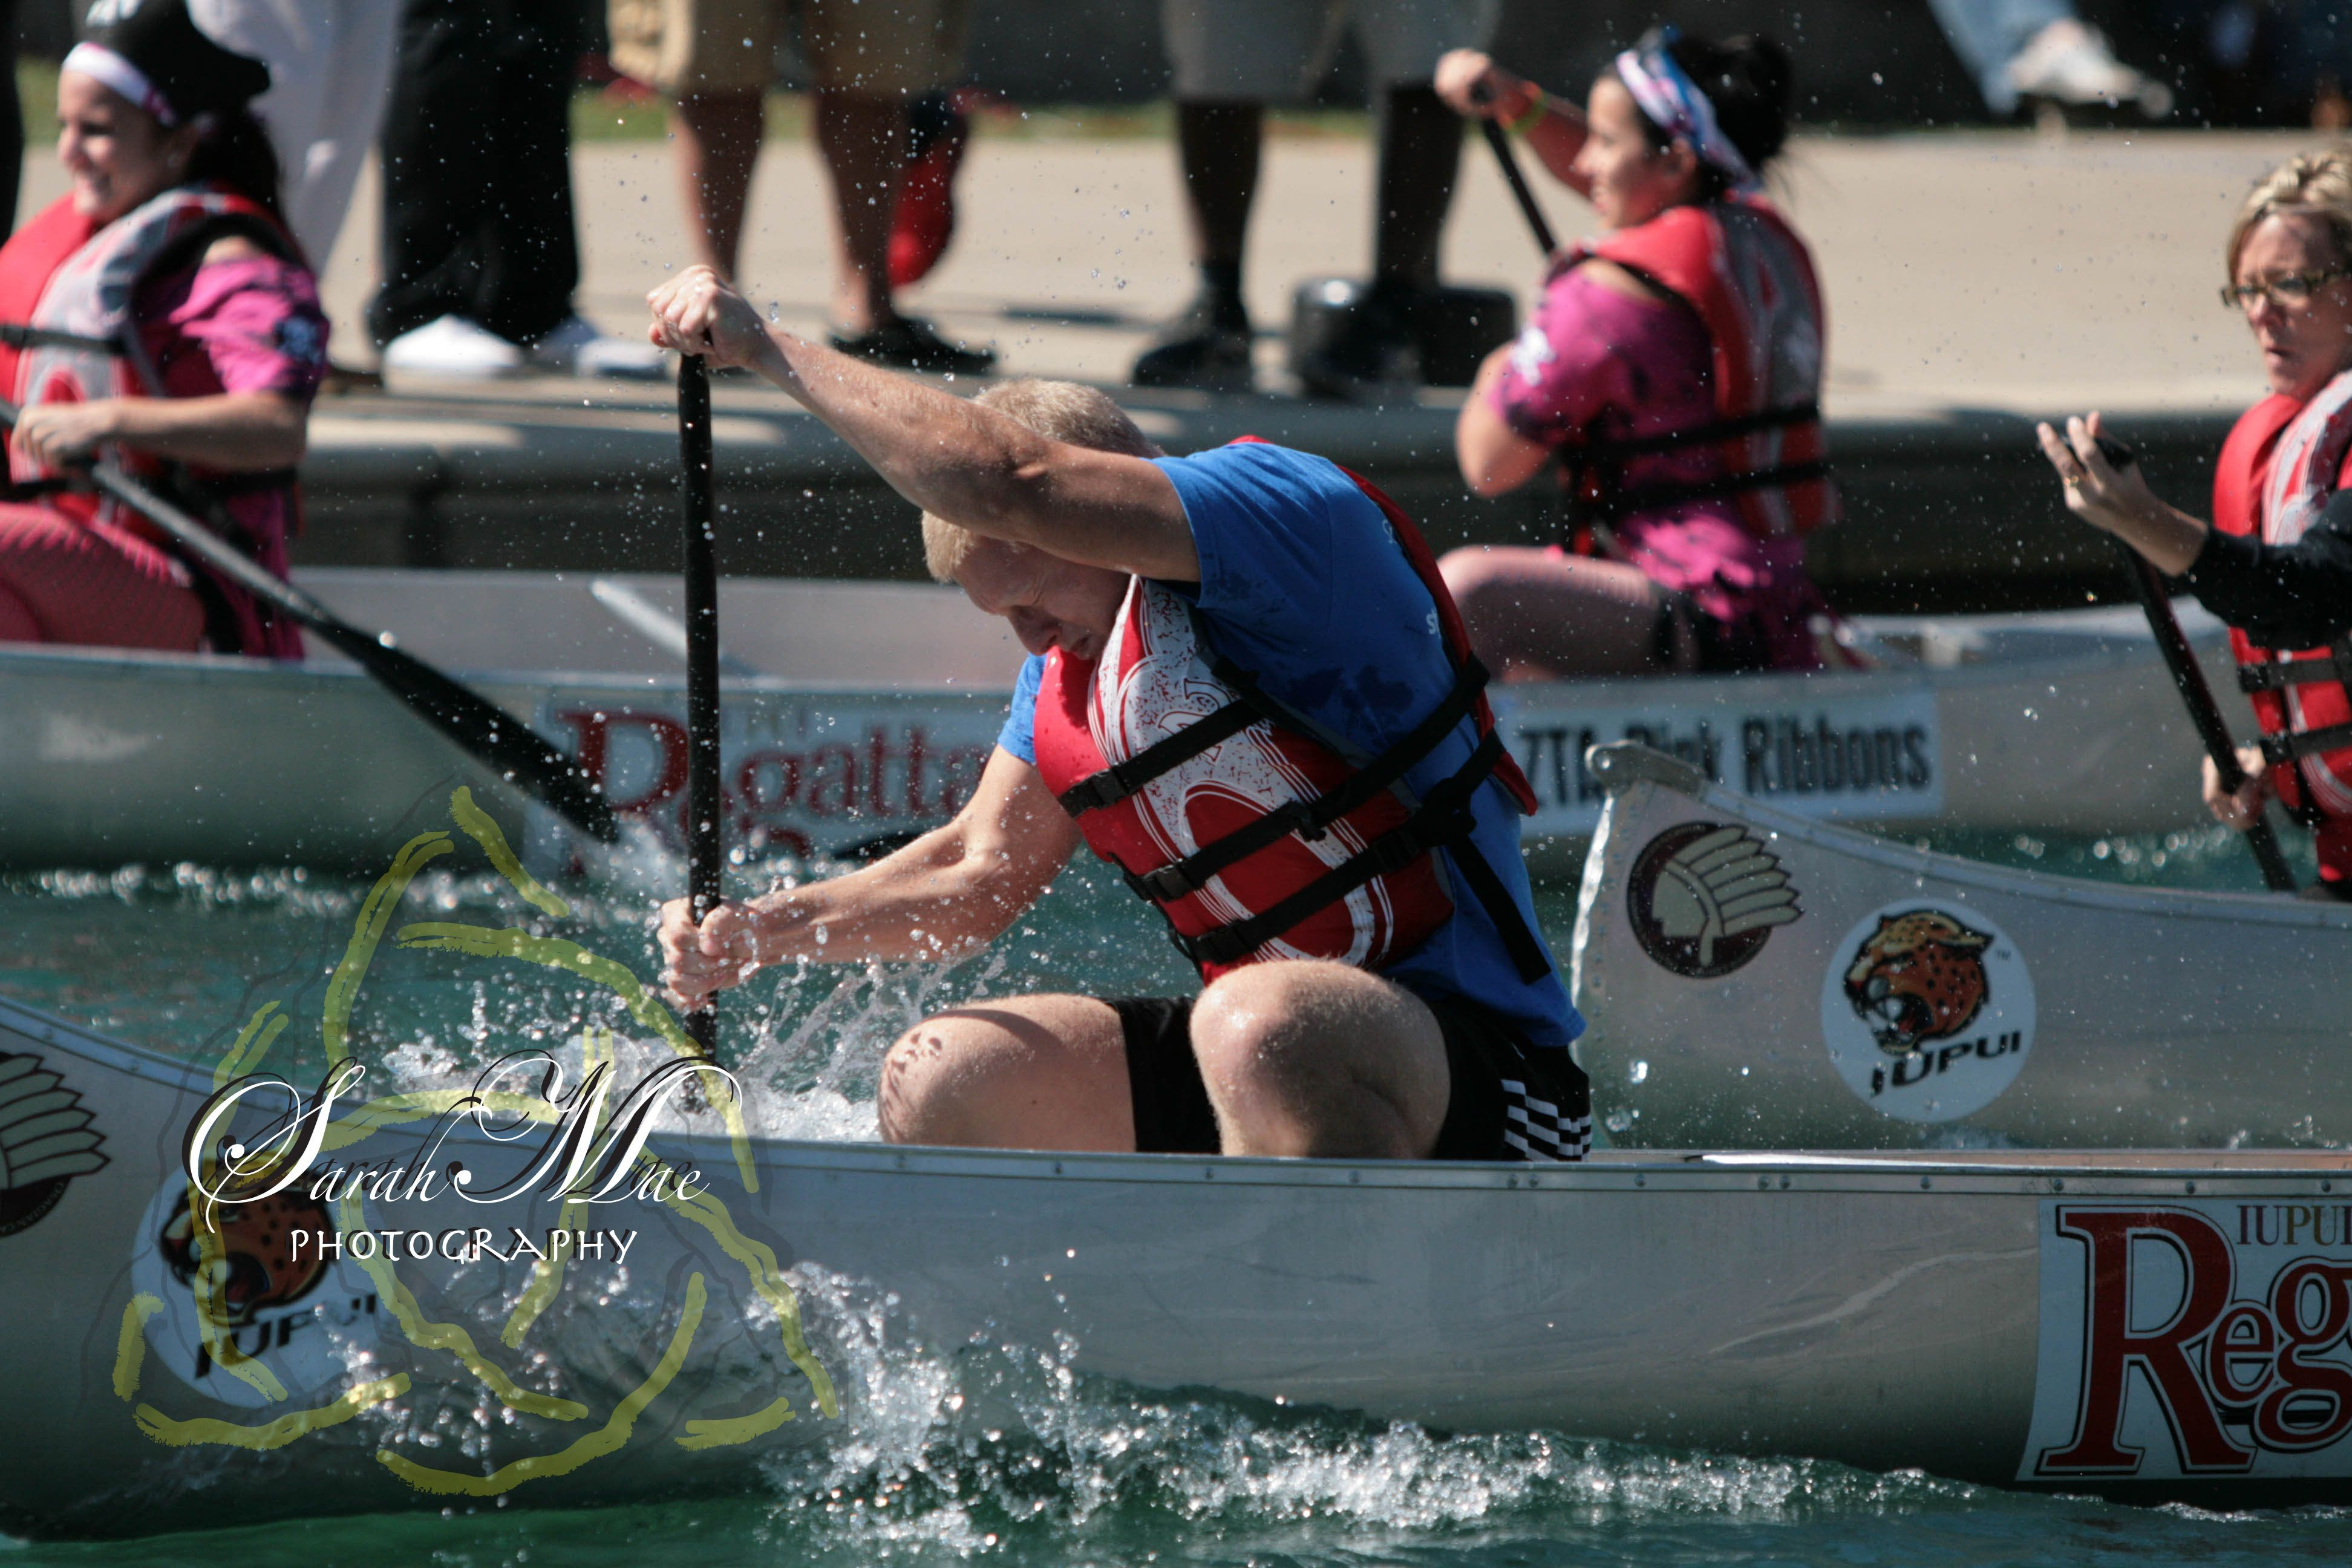 Iupui 4th Annual Regatta This Is My Favorite Shot Out Of The Hundreds I Took The Whole